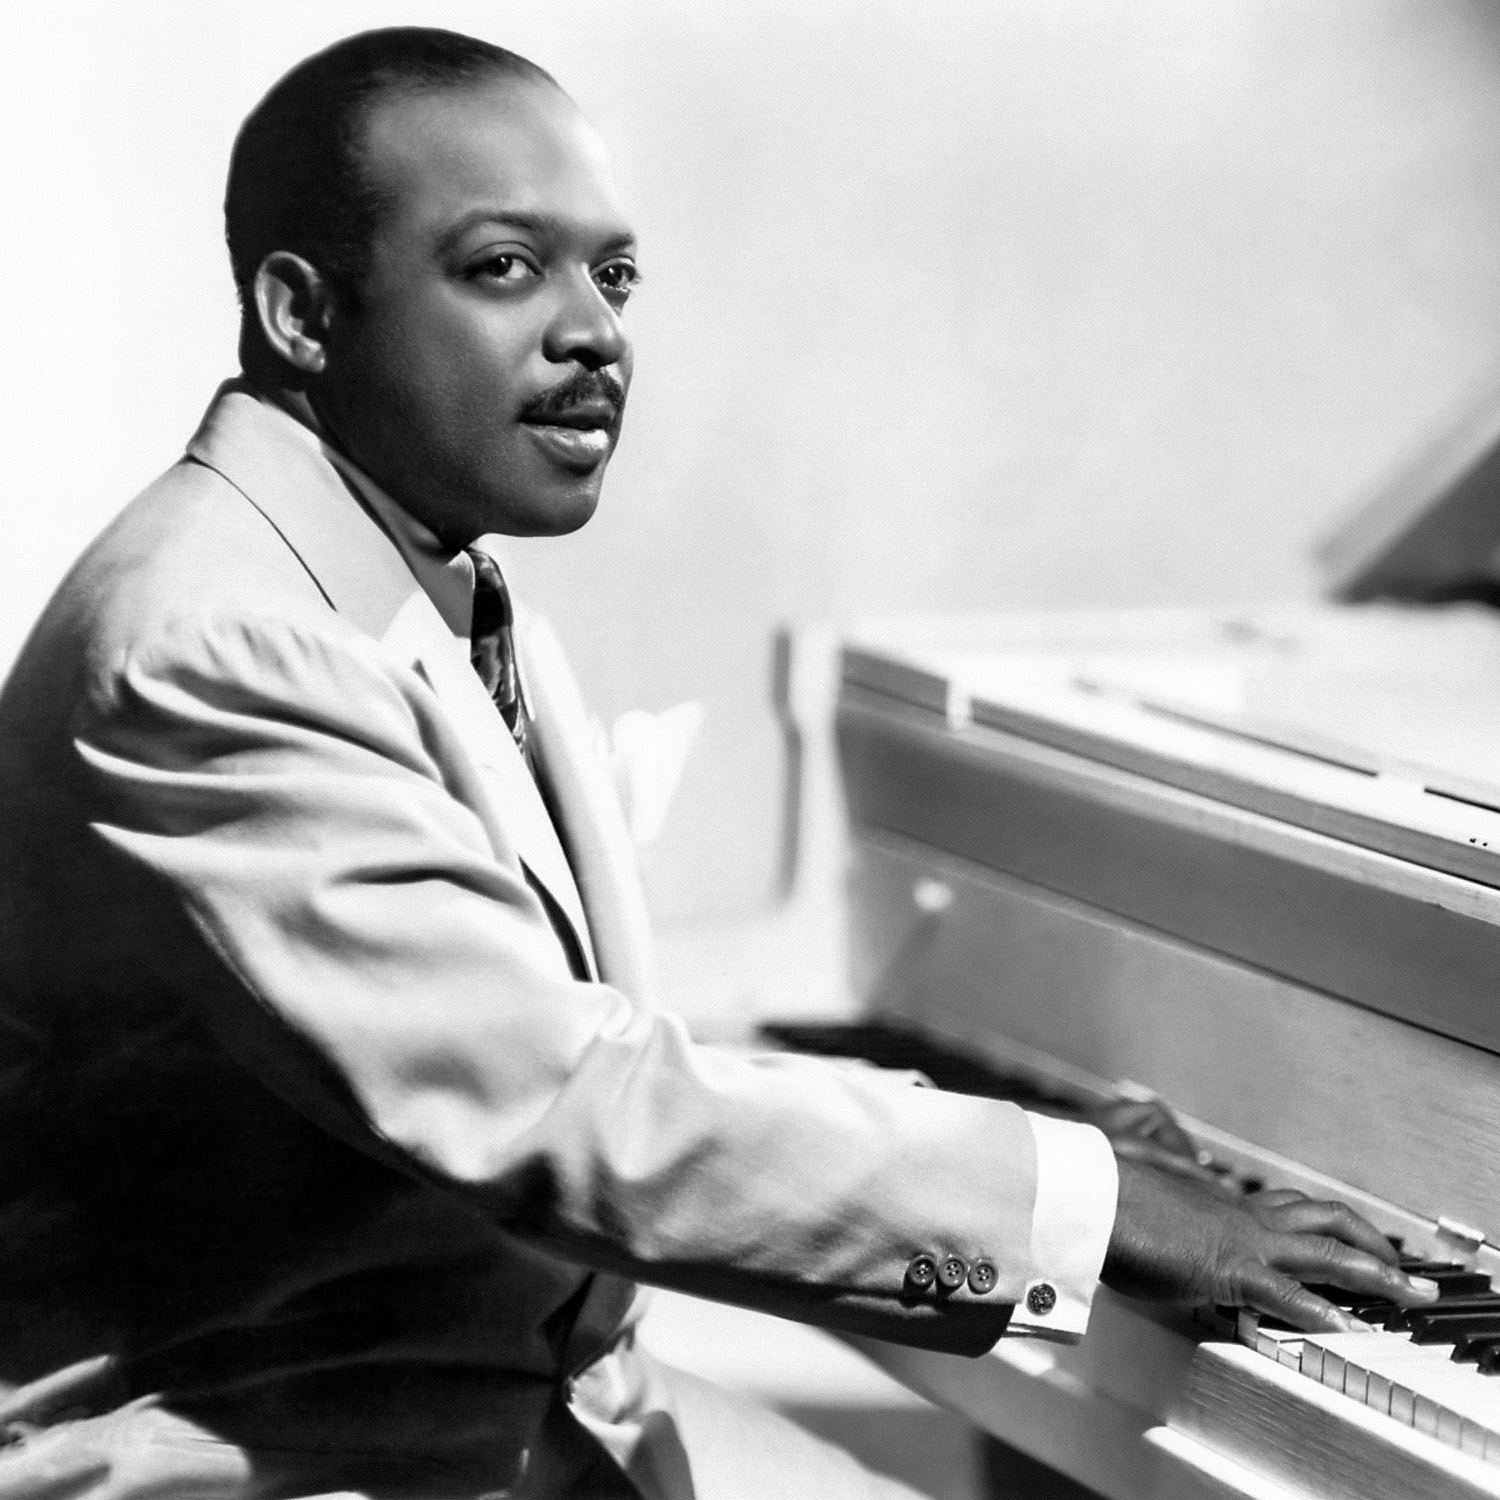 Basie at the piano, 1955, in a photographic portrait by [[James J. Kriegsmann]]